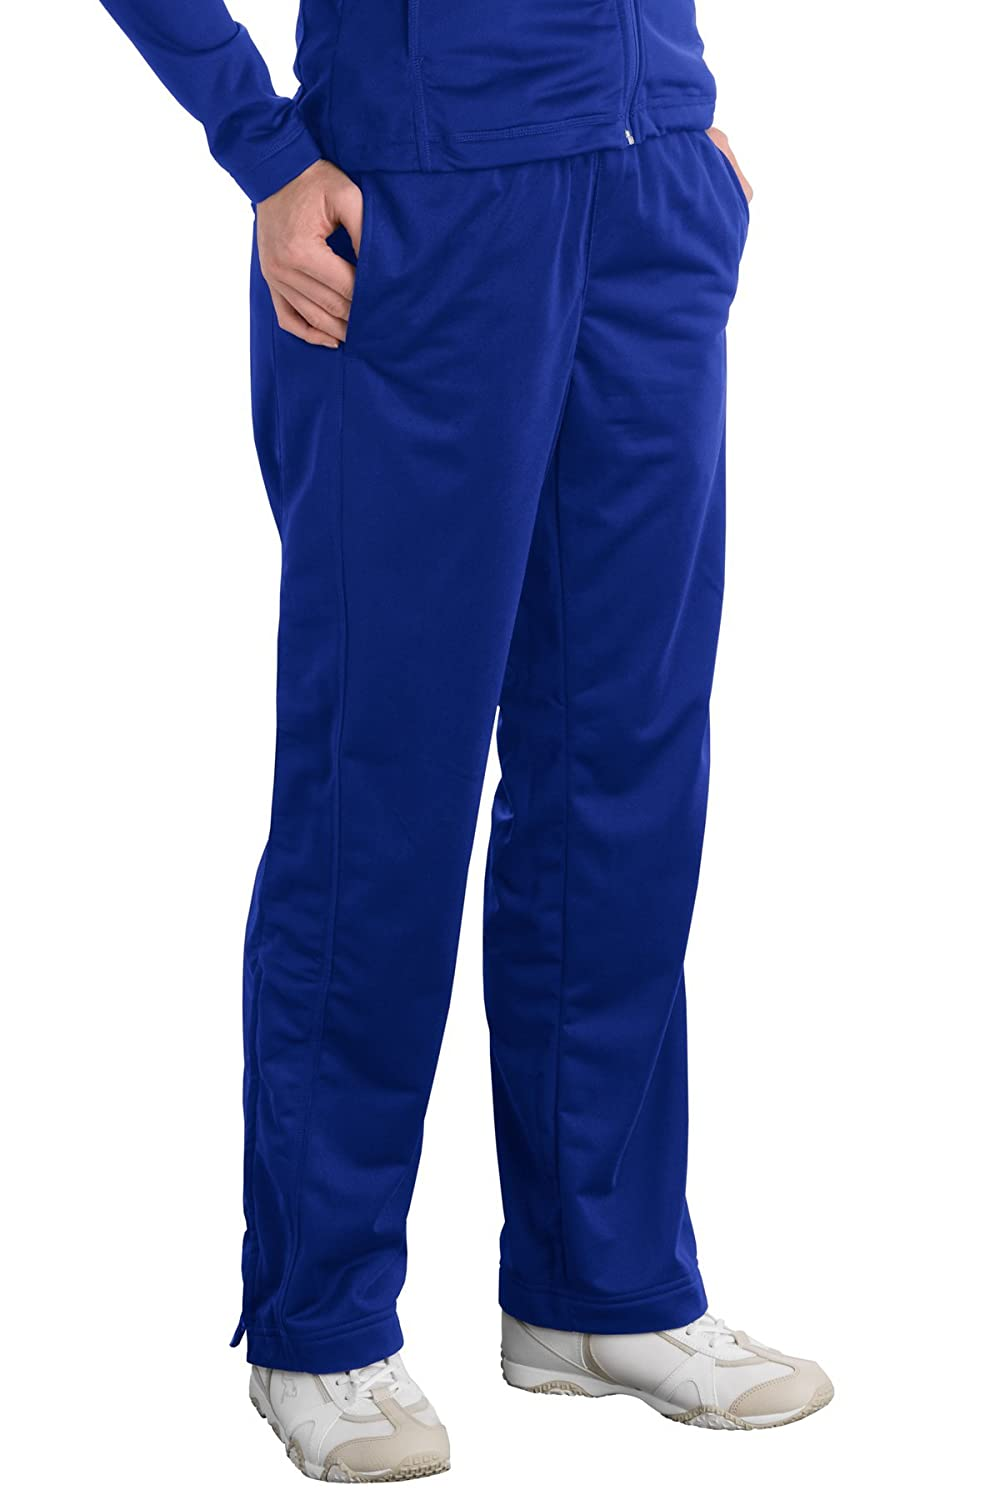 Sport-Tek Ladies' Drawcord Athletic Track Pants LPST91